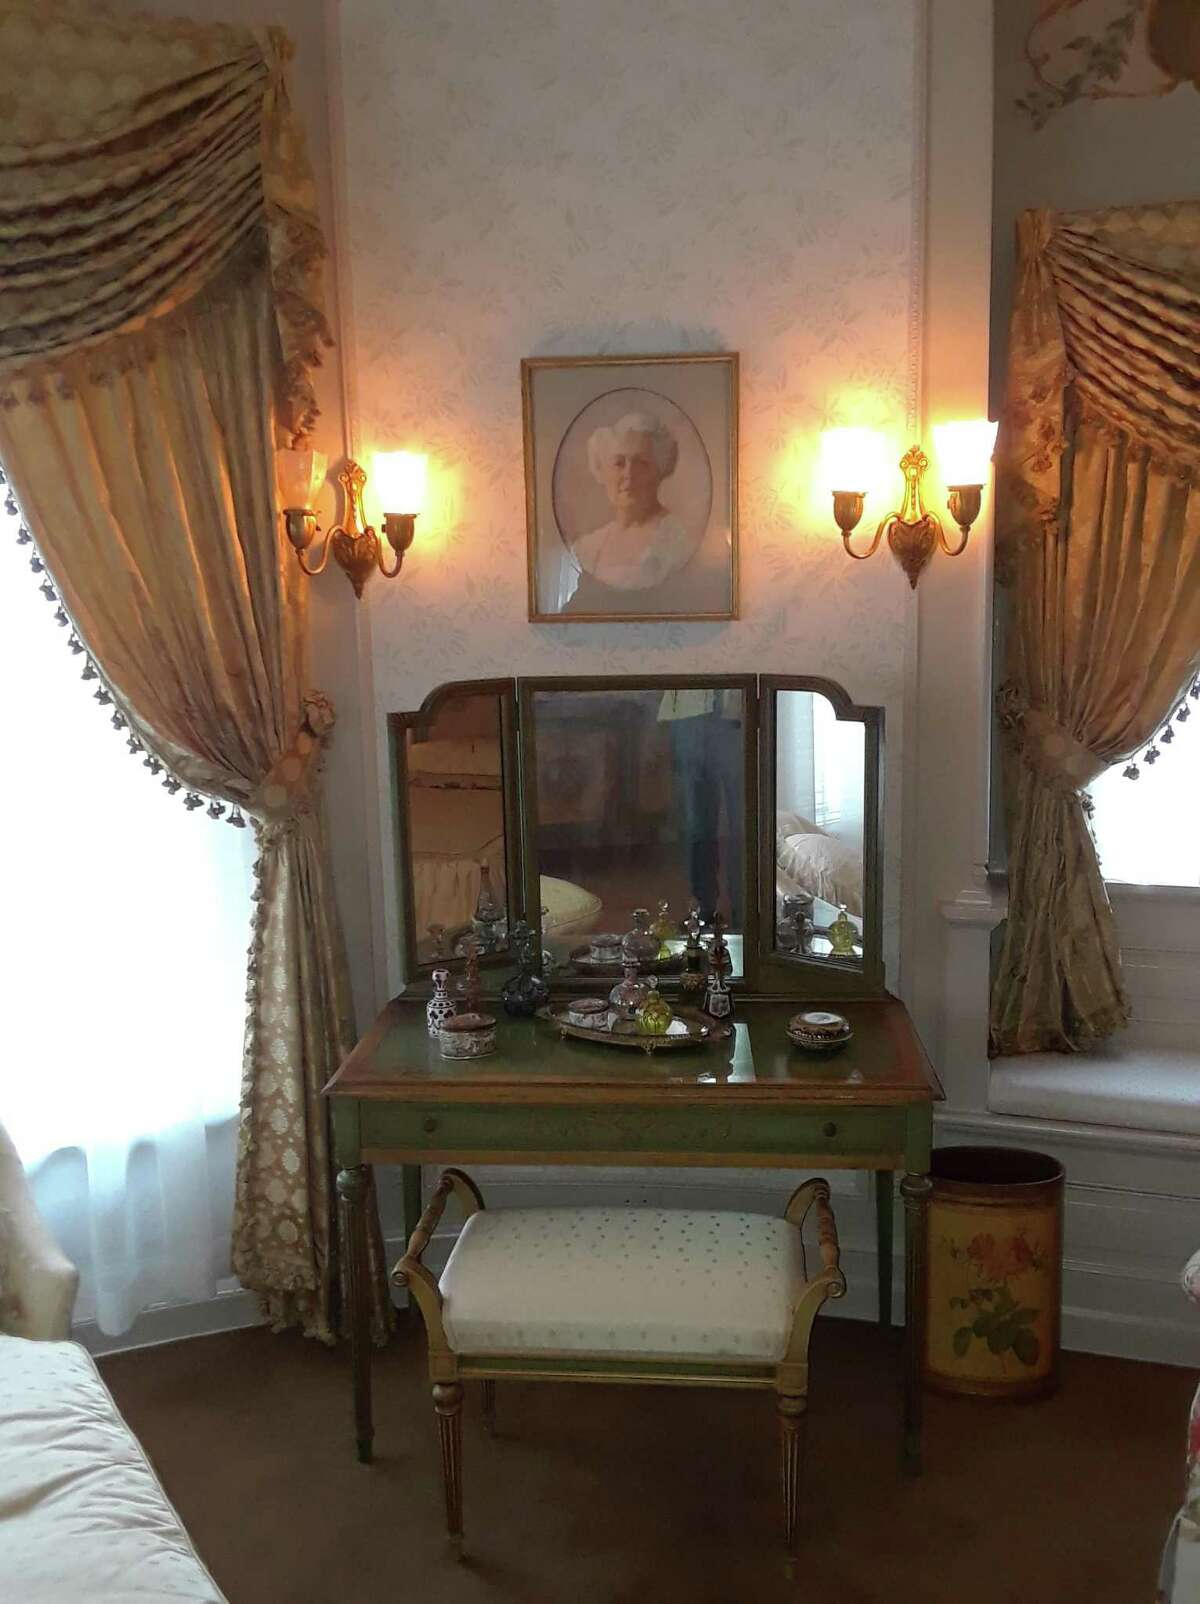 The Hotchkiss-Fyler House, home of the Torrington Historical Society at 192 Main St., is open for holiday tours starting Dec. 12. Above, Gertrude Fyler-Hotchkiss' dressing table in her recently restored bedroom.